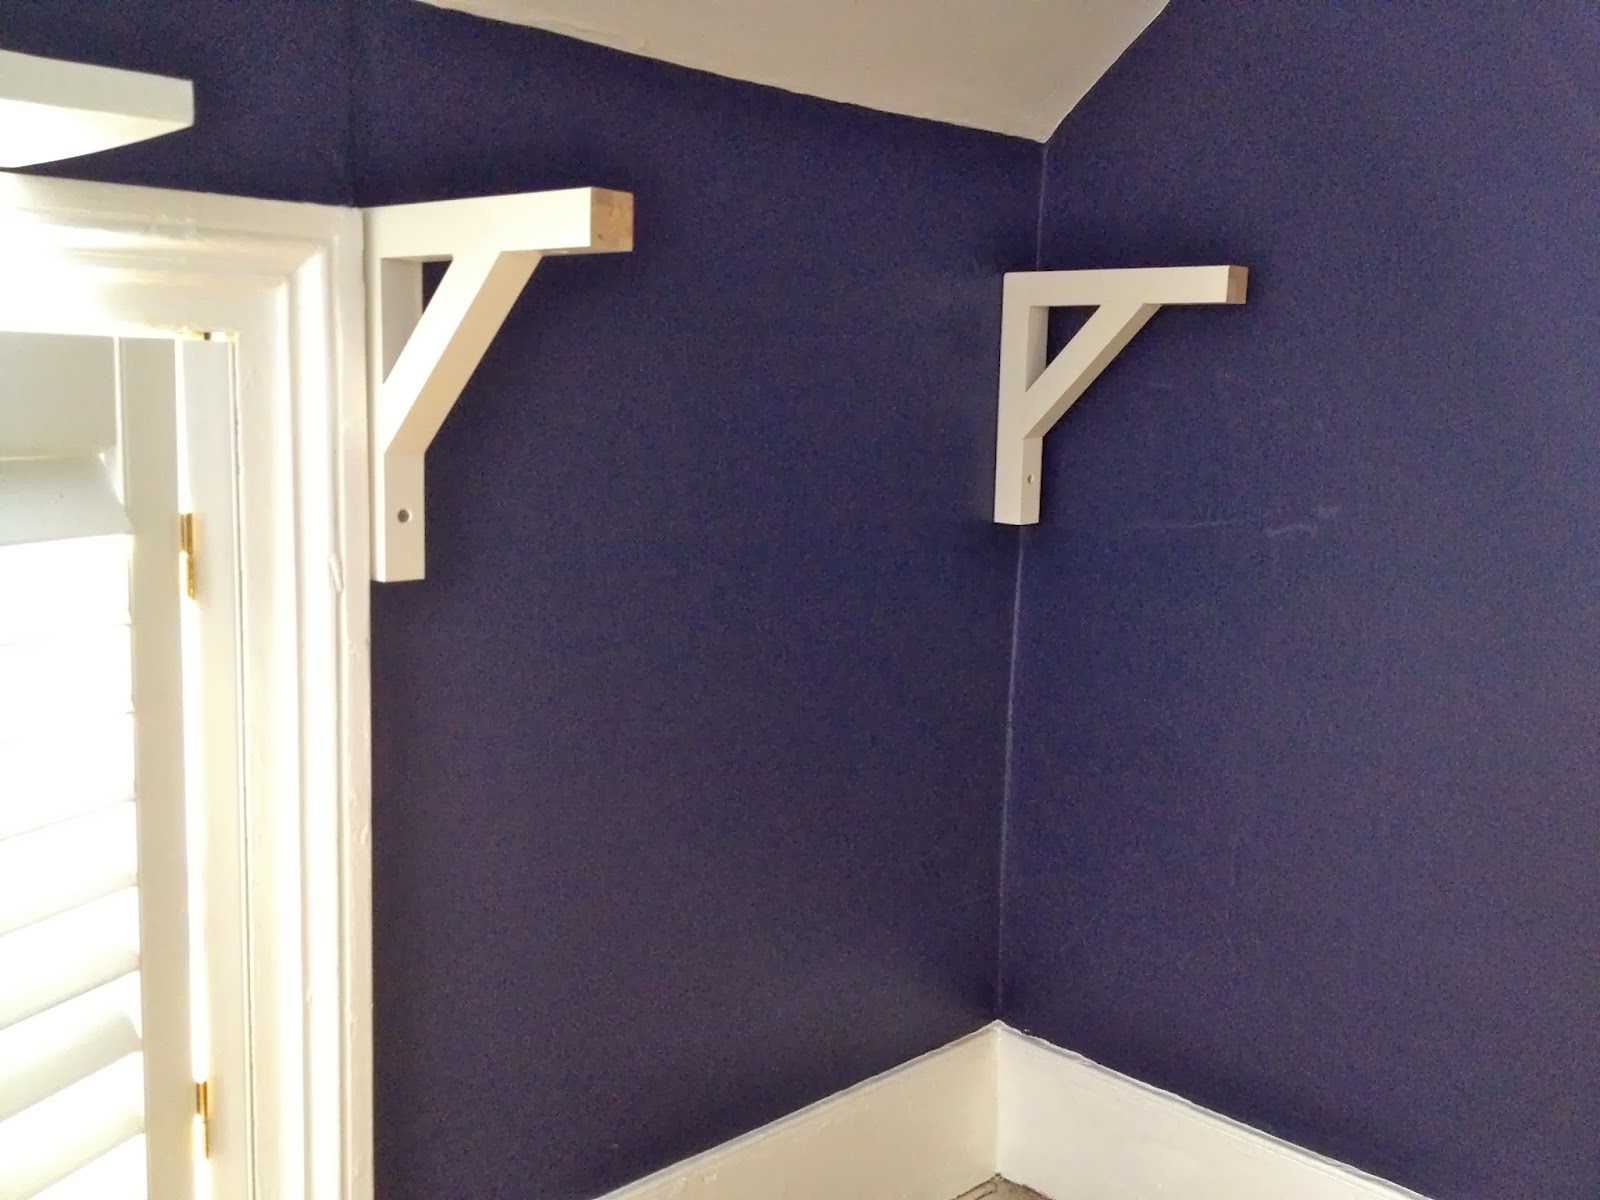 shelf support brackets installed